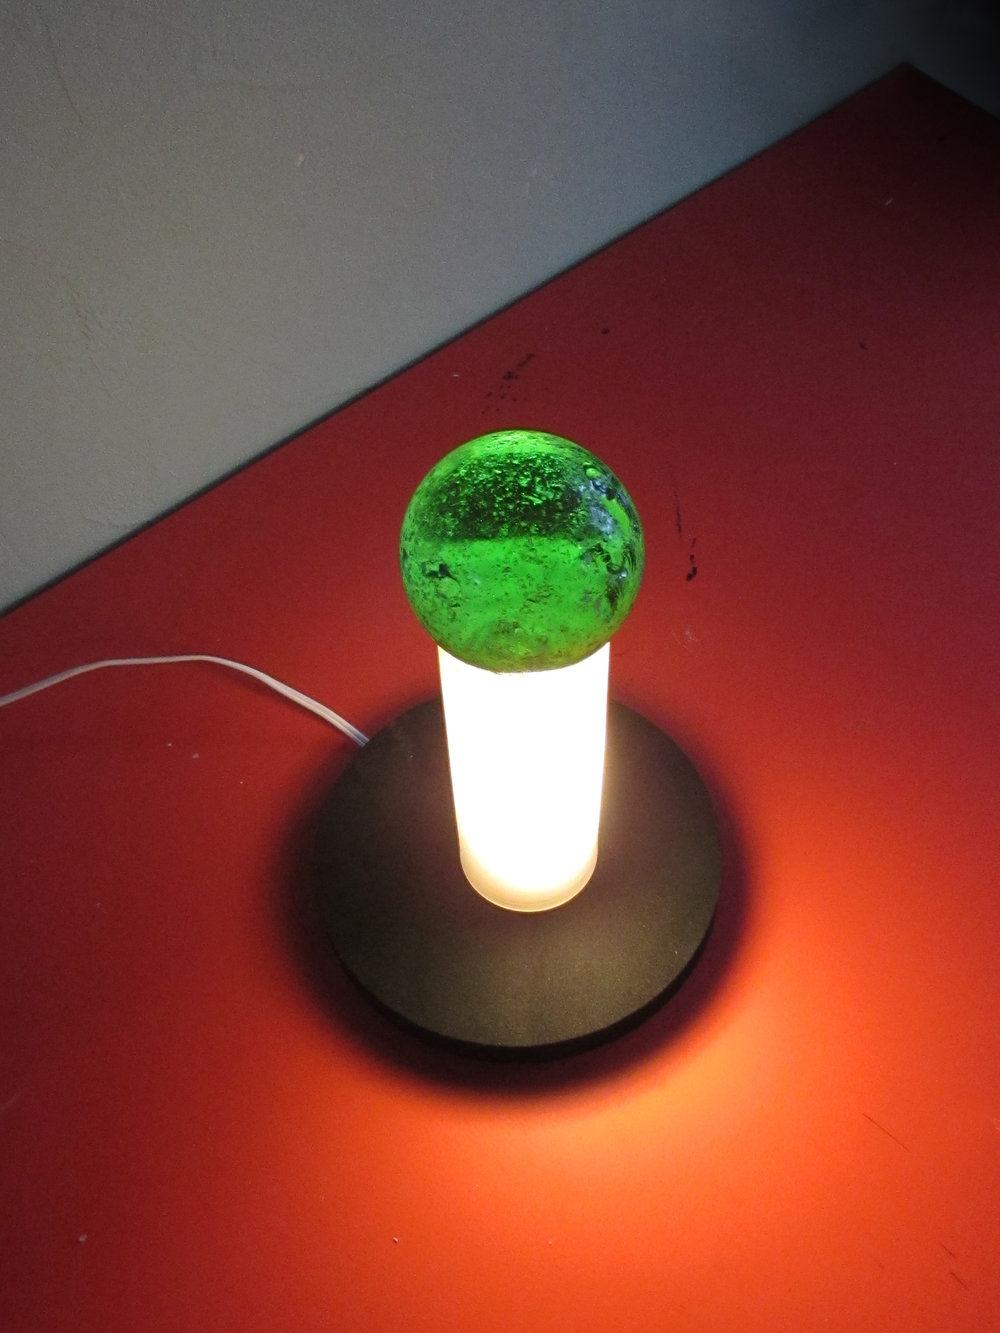 #1minuteLamp by Wim